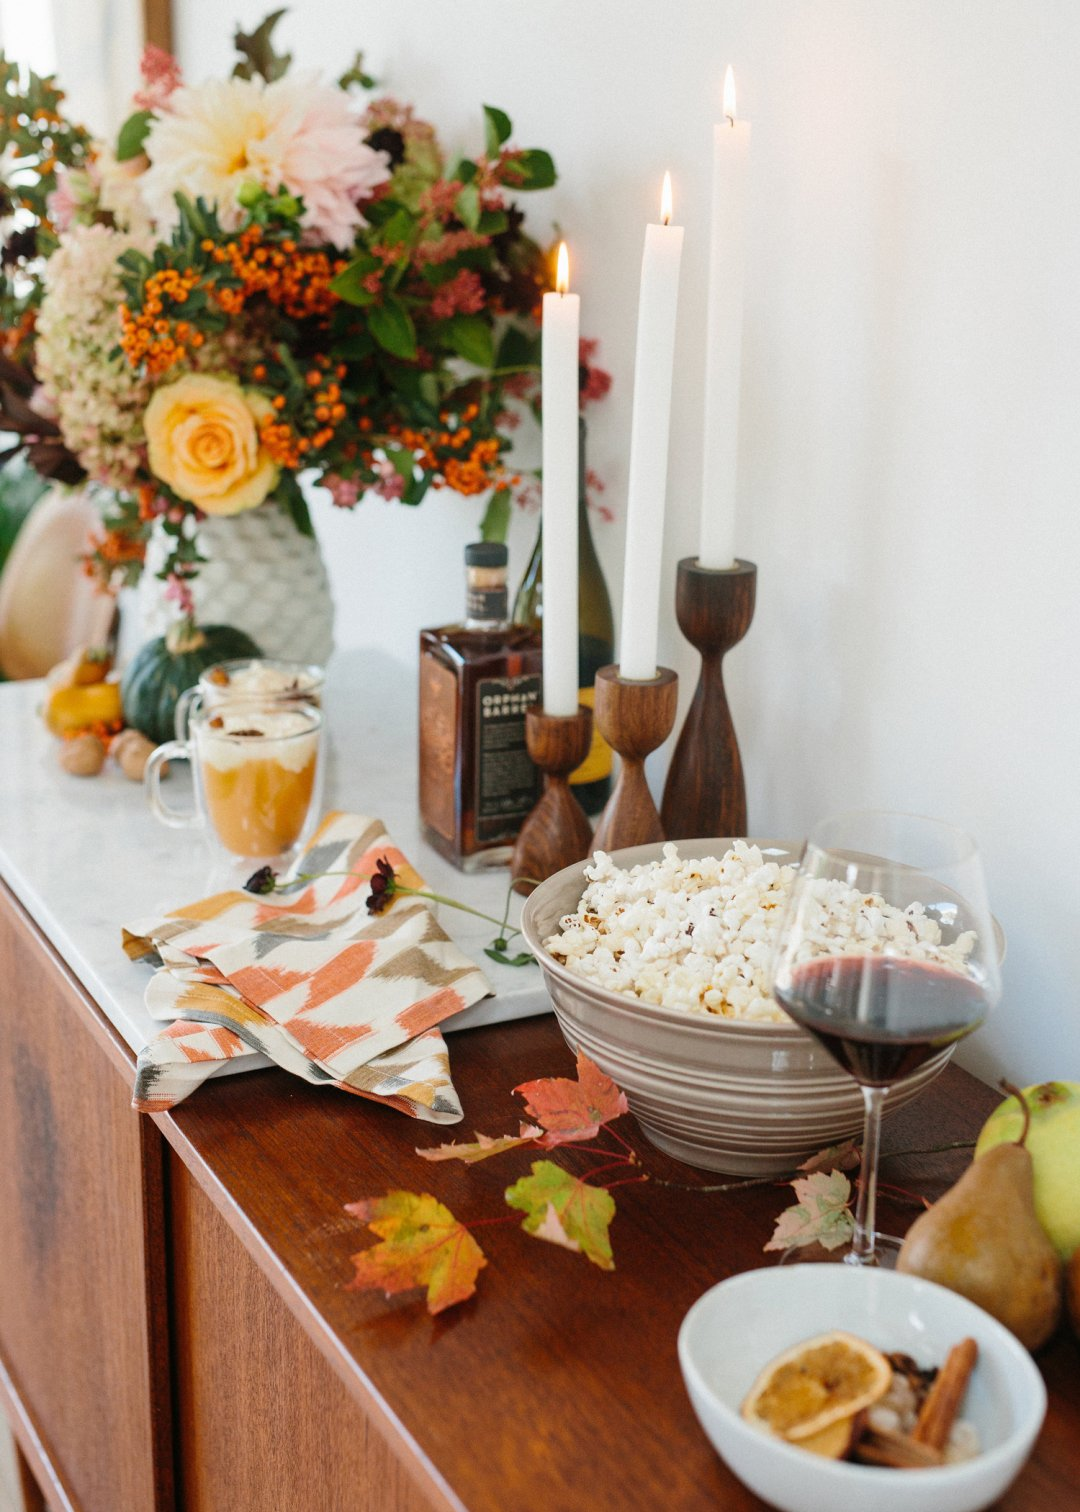 Popcorn and wine laid out on a sideboard decorated for fall with leaves and candles in wooden candle holders